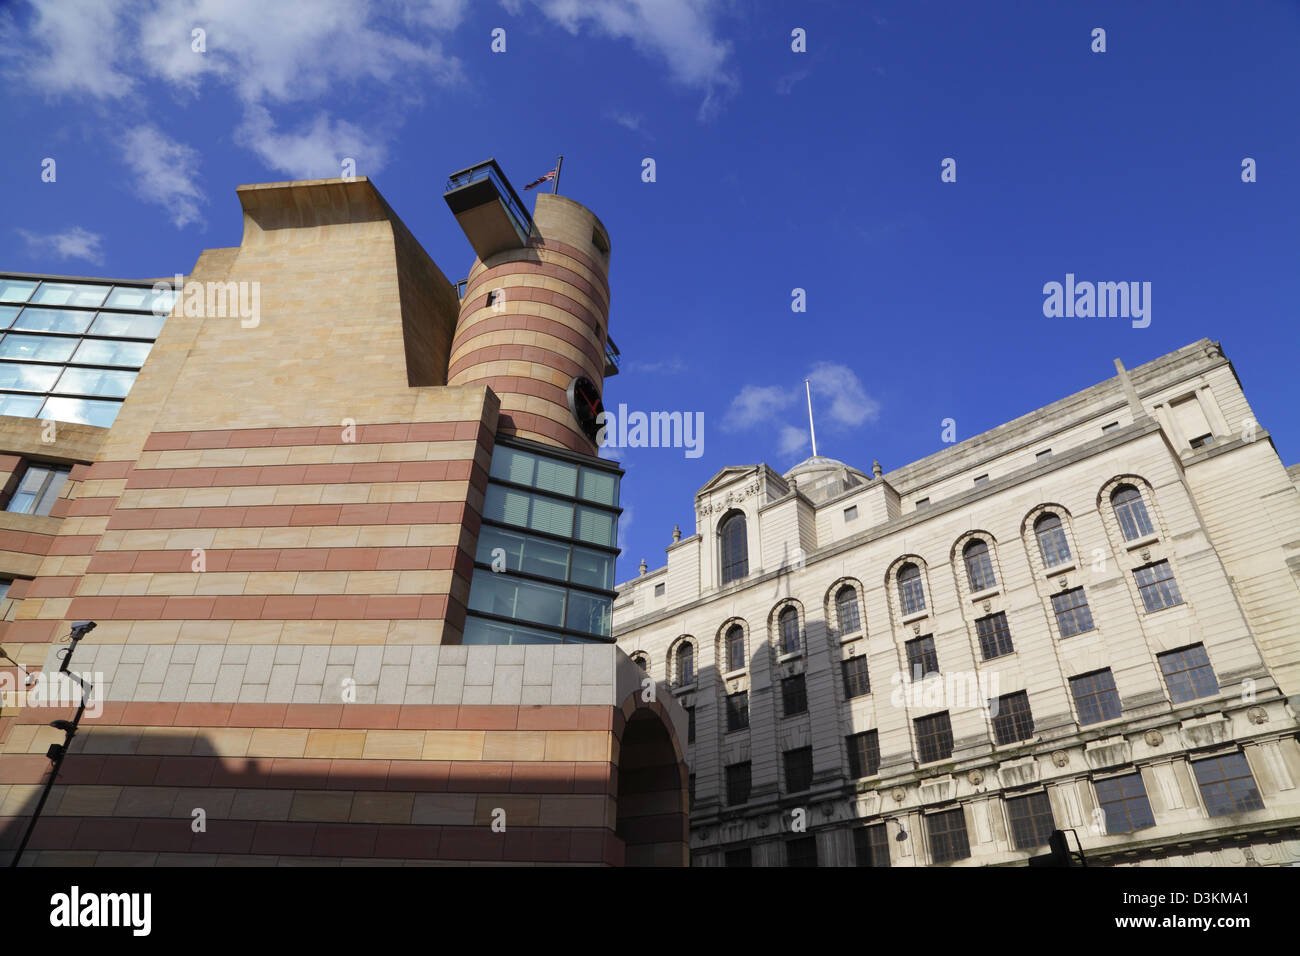 L'architecture de la ville, un bâtiment avicole, City of London, England, UK, FR Photo Stock